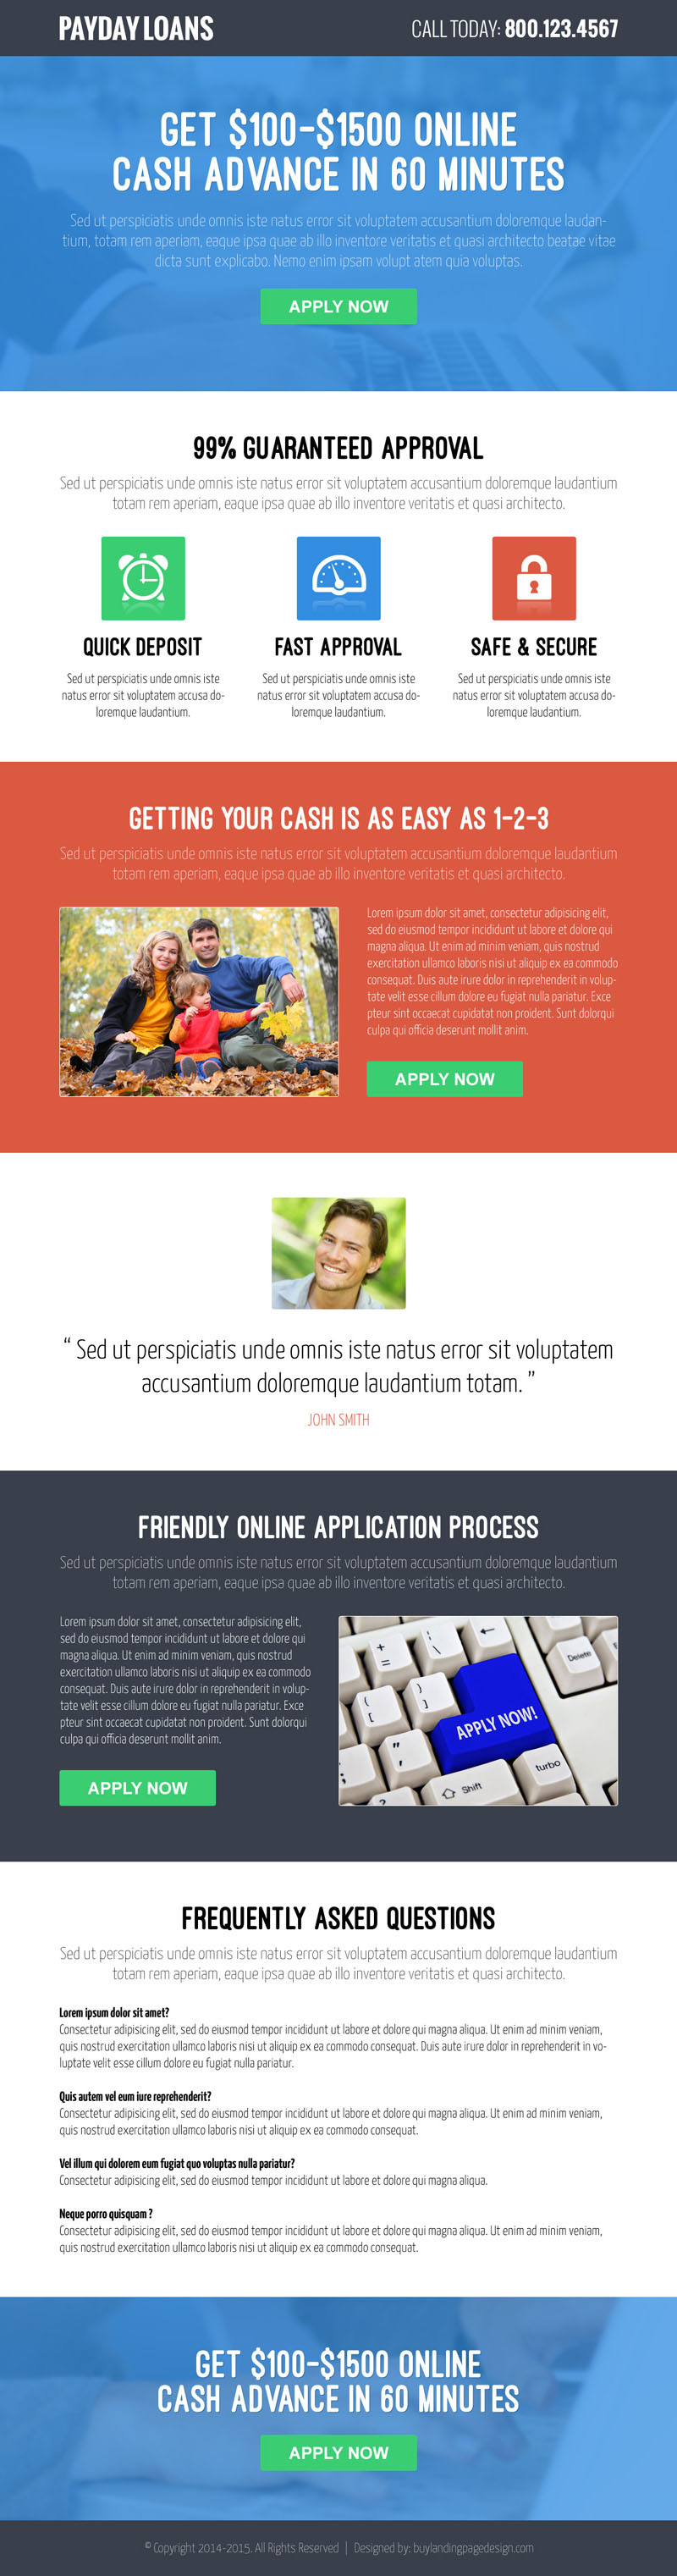 online-cash-advance-responsive-payday-loan-call-to-action-landing-page-design-template-014